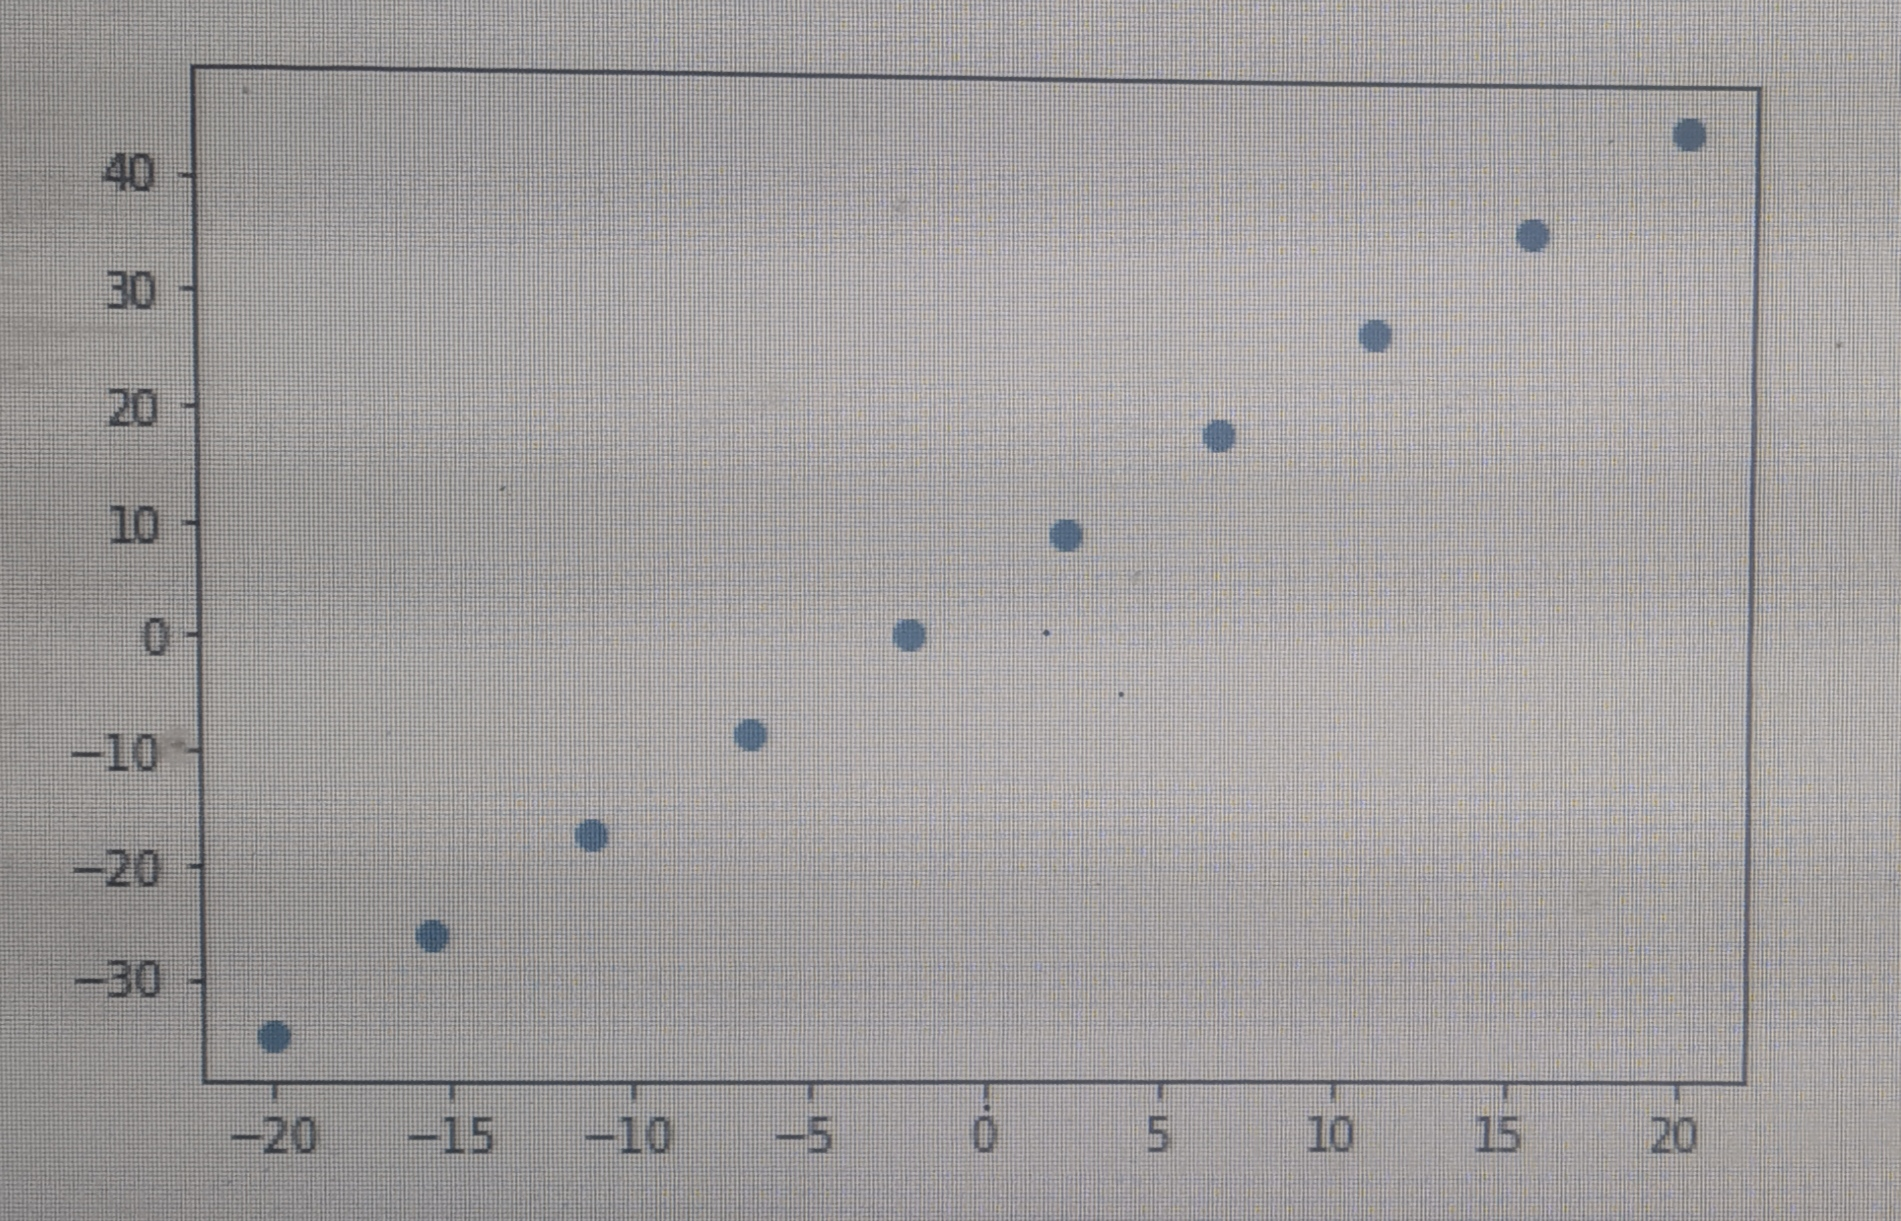 Polynomial fitting using numpy.polyfit in Python